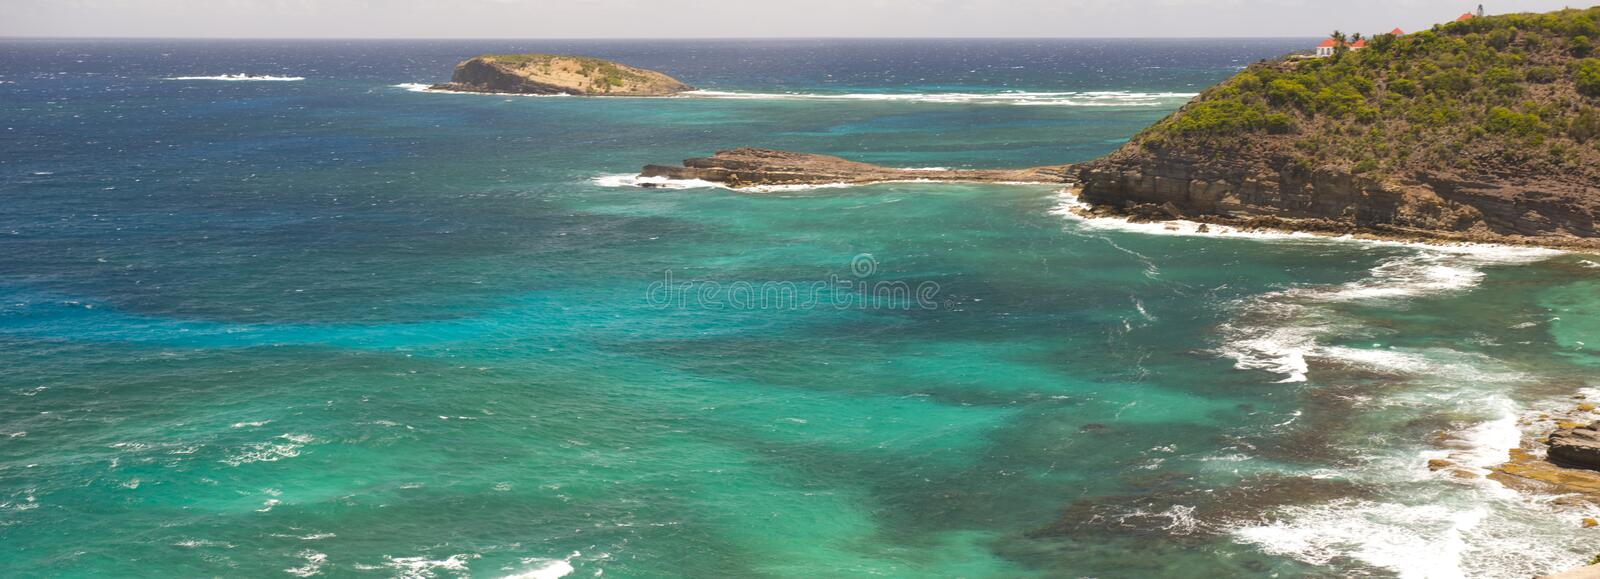 St. Barth Island, Caribbean sea royalty free stock photo